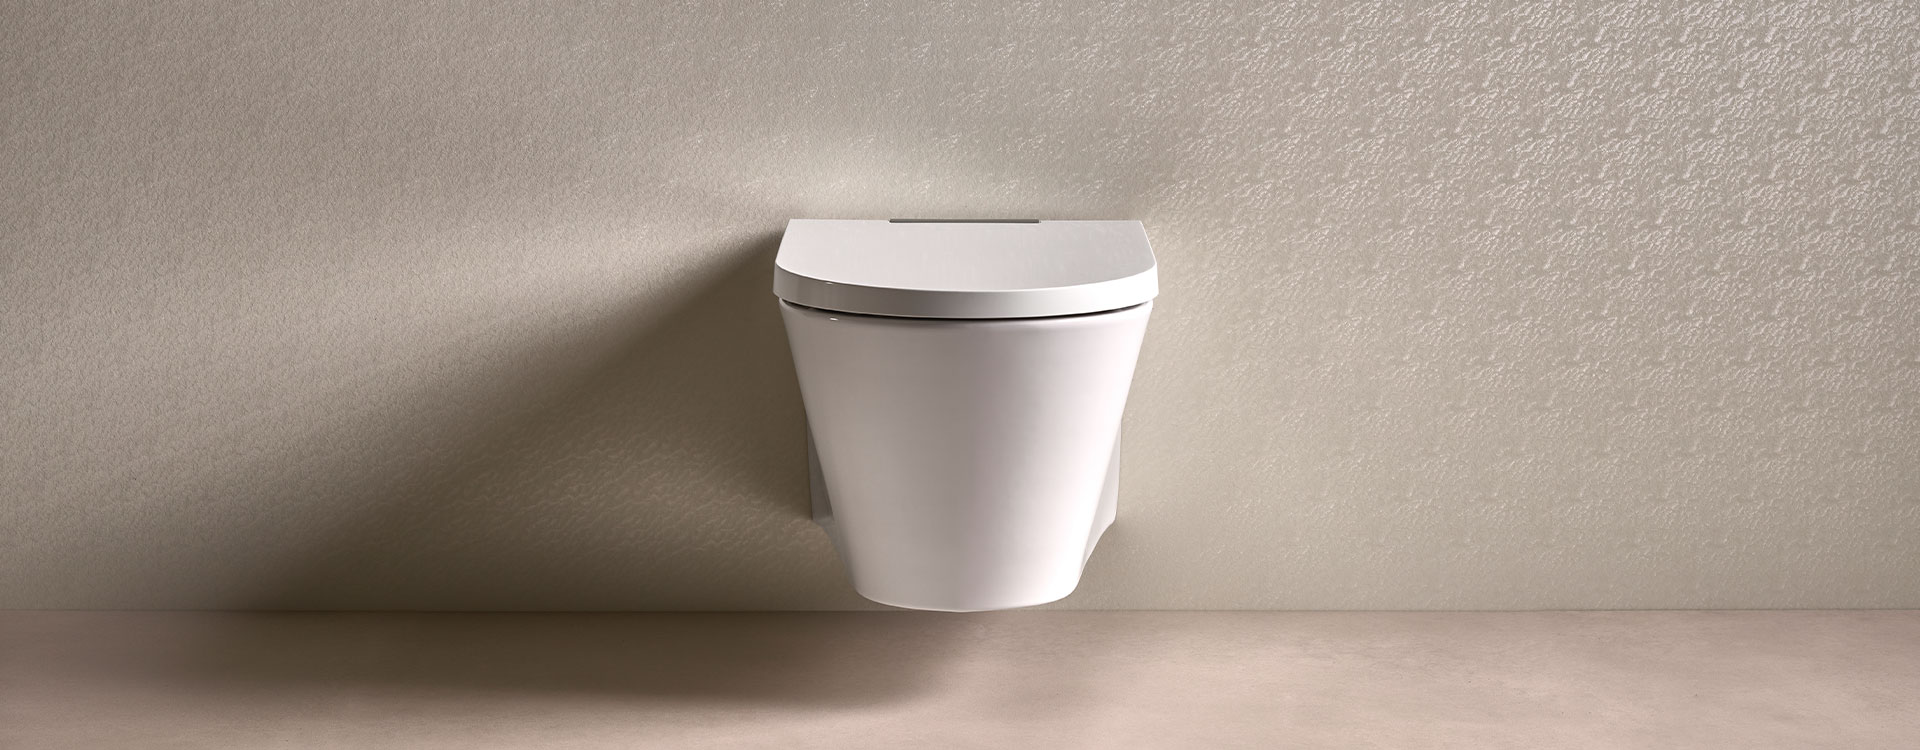 AXENT.ONE Wall-hung shower toilet